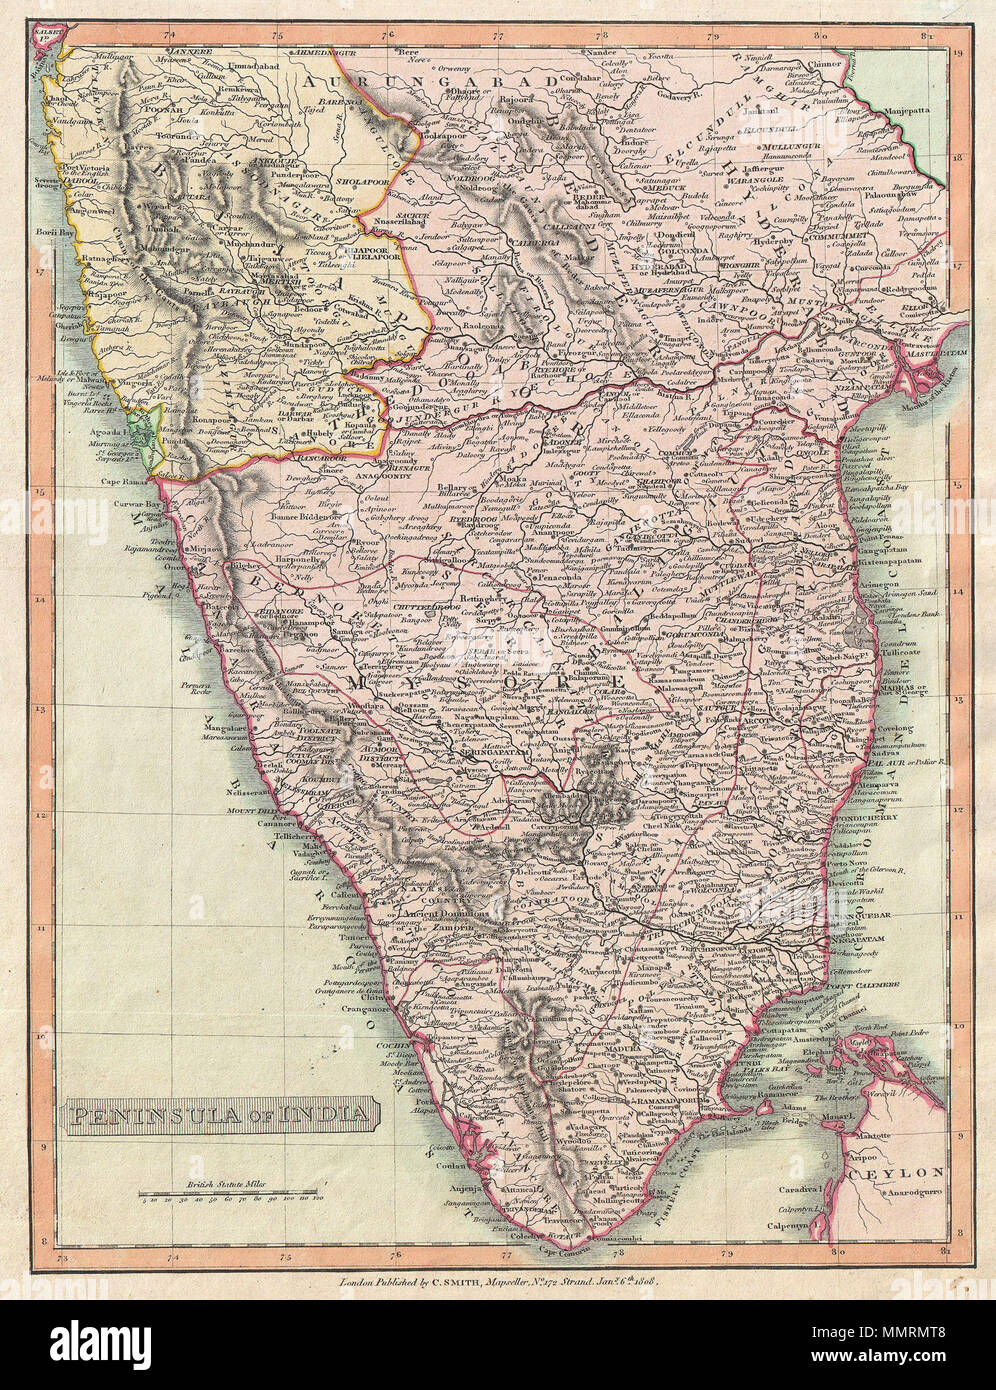 India Princely States Map on india taj mahal, india bombay, india independence movement, india punjab, india delhi, india harappan civilization, india british raj, india biggest cities, india thar desert, india map pre-1947, india economy,